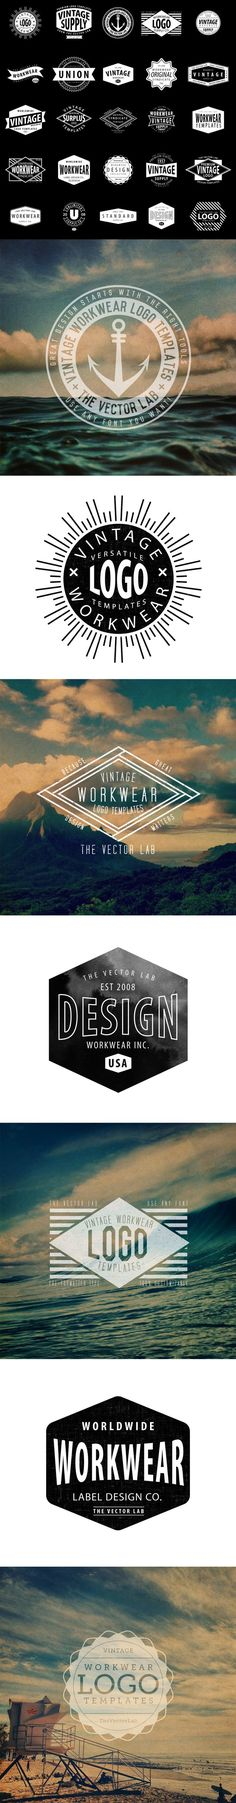 Vintage Workwear Logo Templates for Adobe Illustrator http://thevectorlab.com/products/logo-templates-vintage-workwear